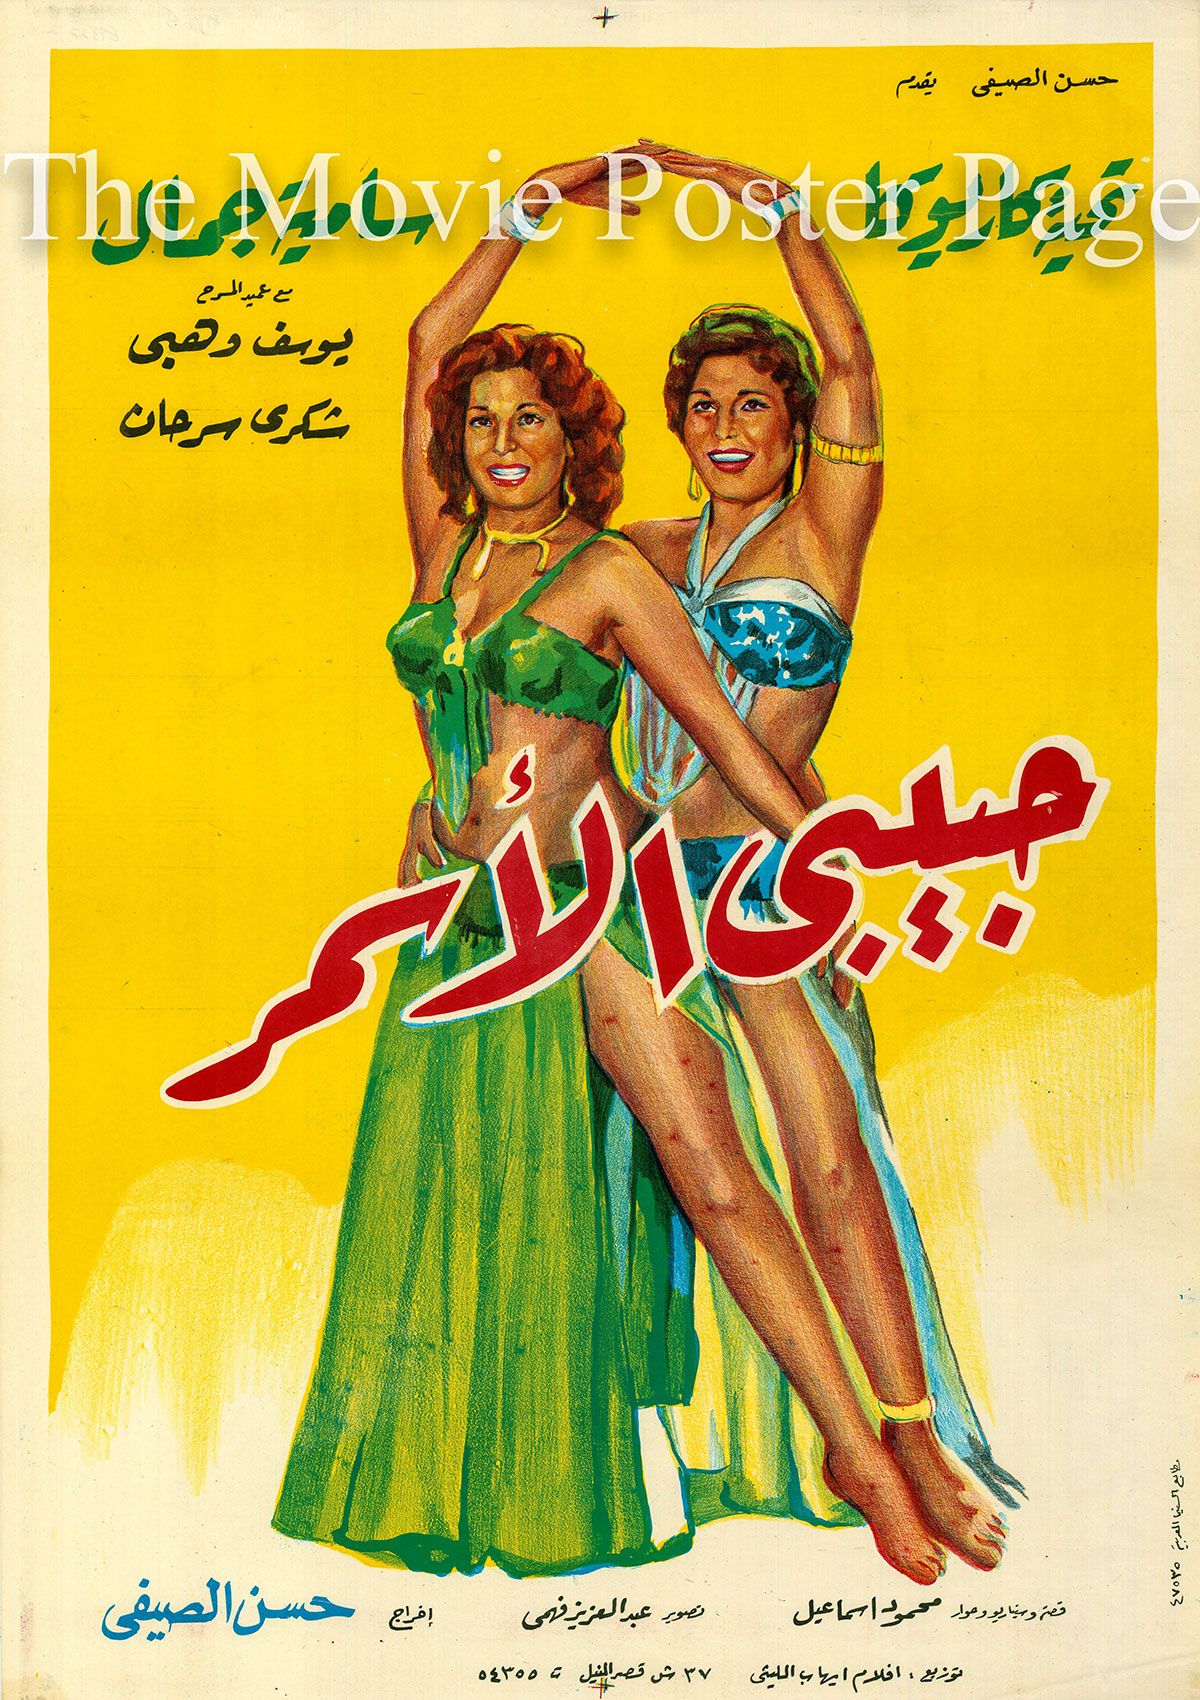 Pictured is an Egyptian promotional poster for the 1958 Hassan El-Seify film My Dark Darling starring Taheya Cariocca and Samia Gamal.